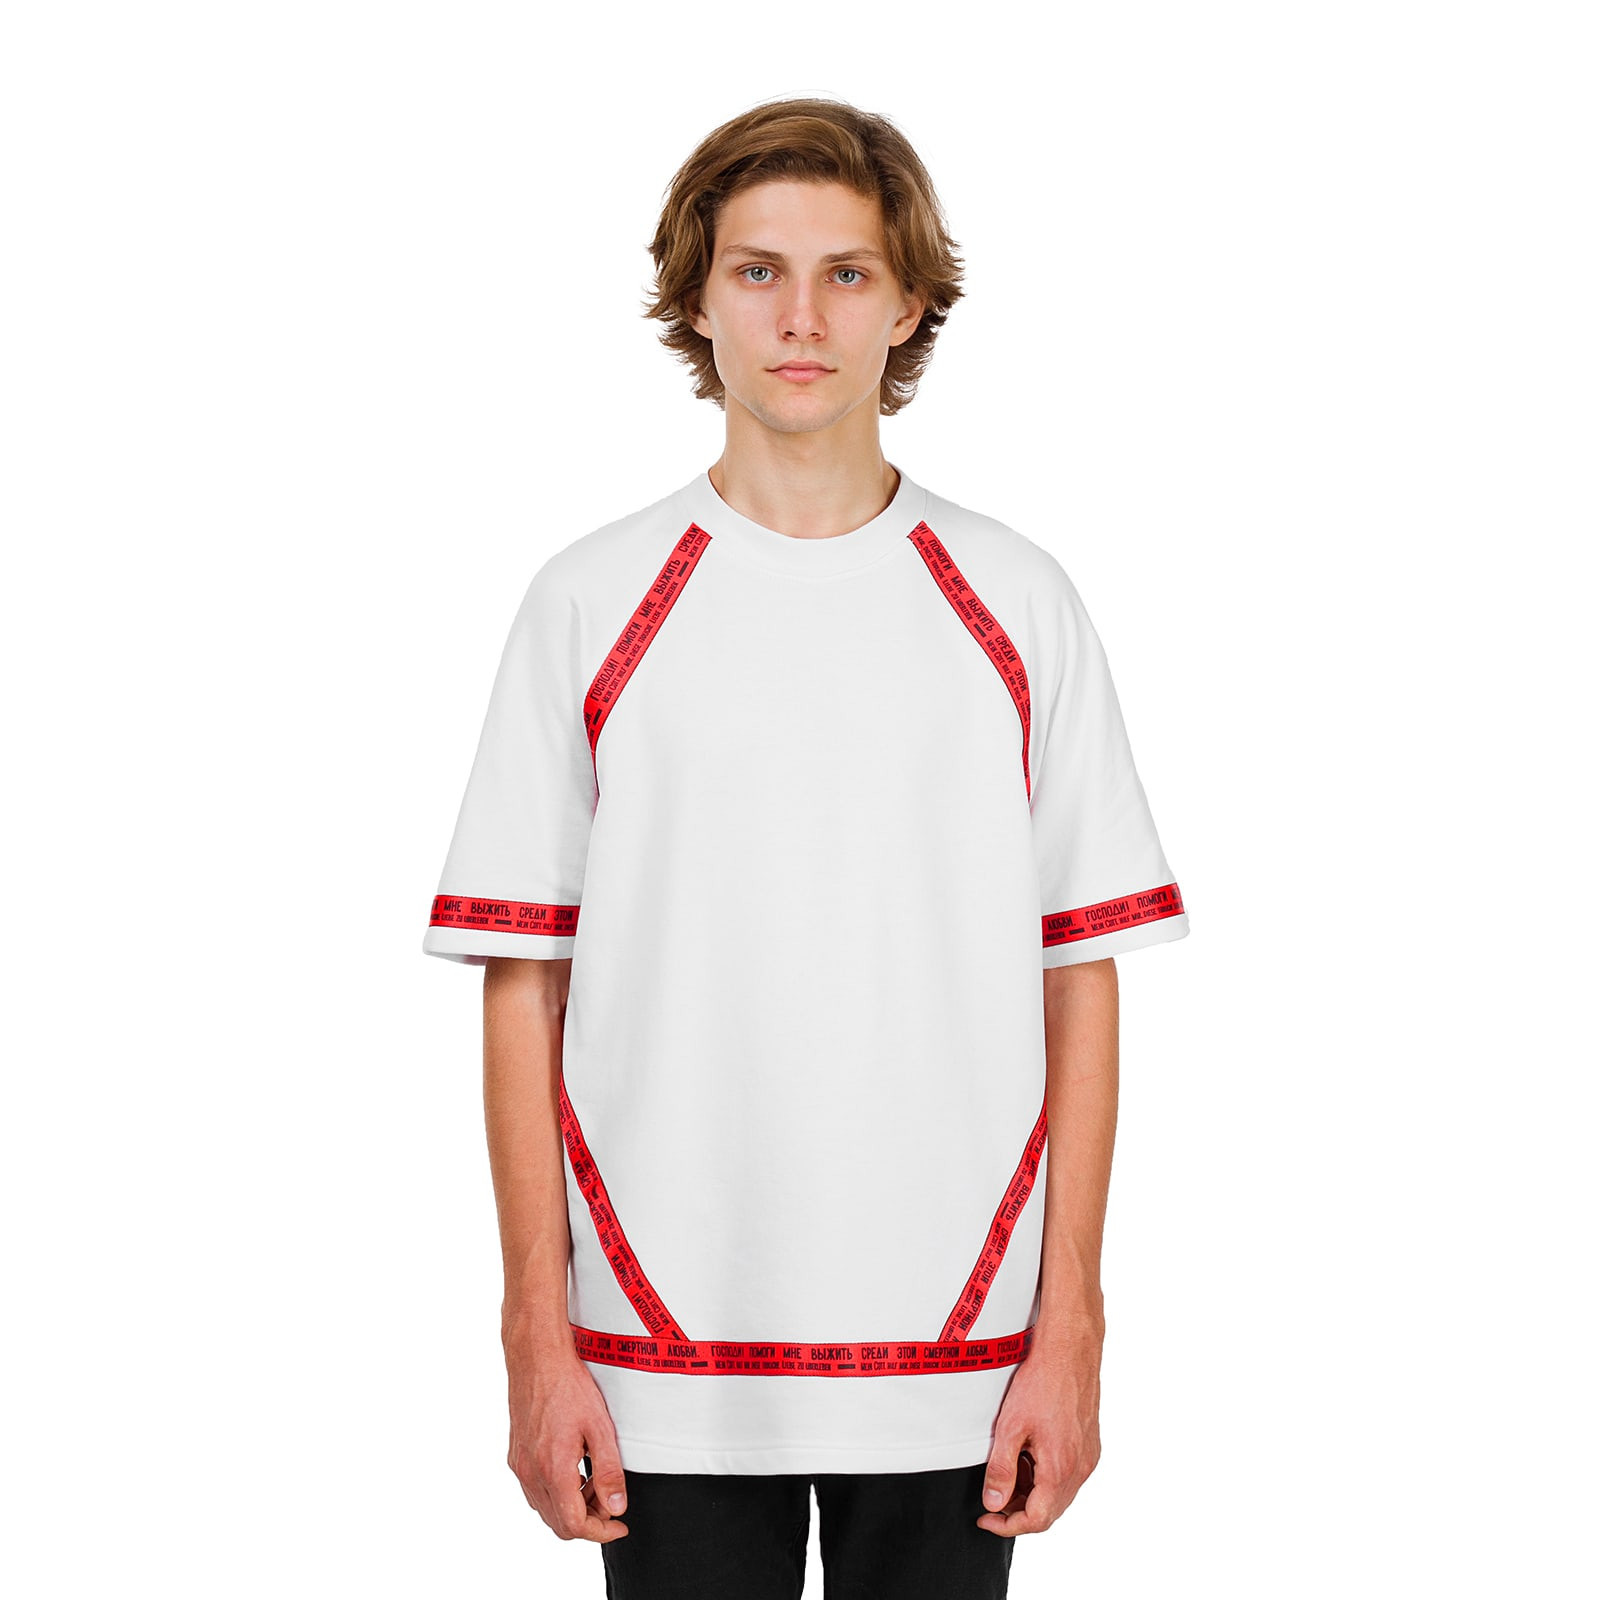 69bb8a1459e3 Division White/Red Men's T-Shirt